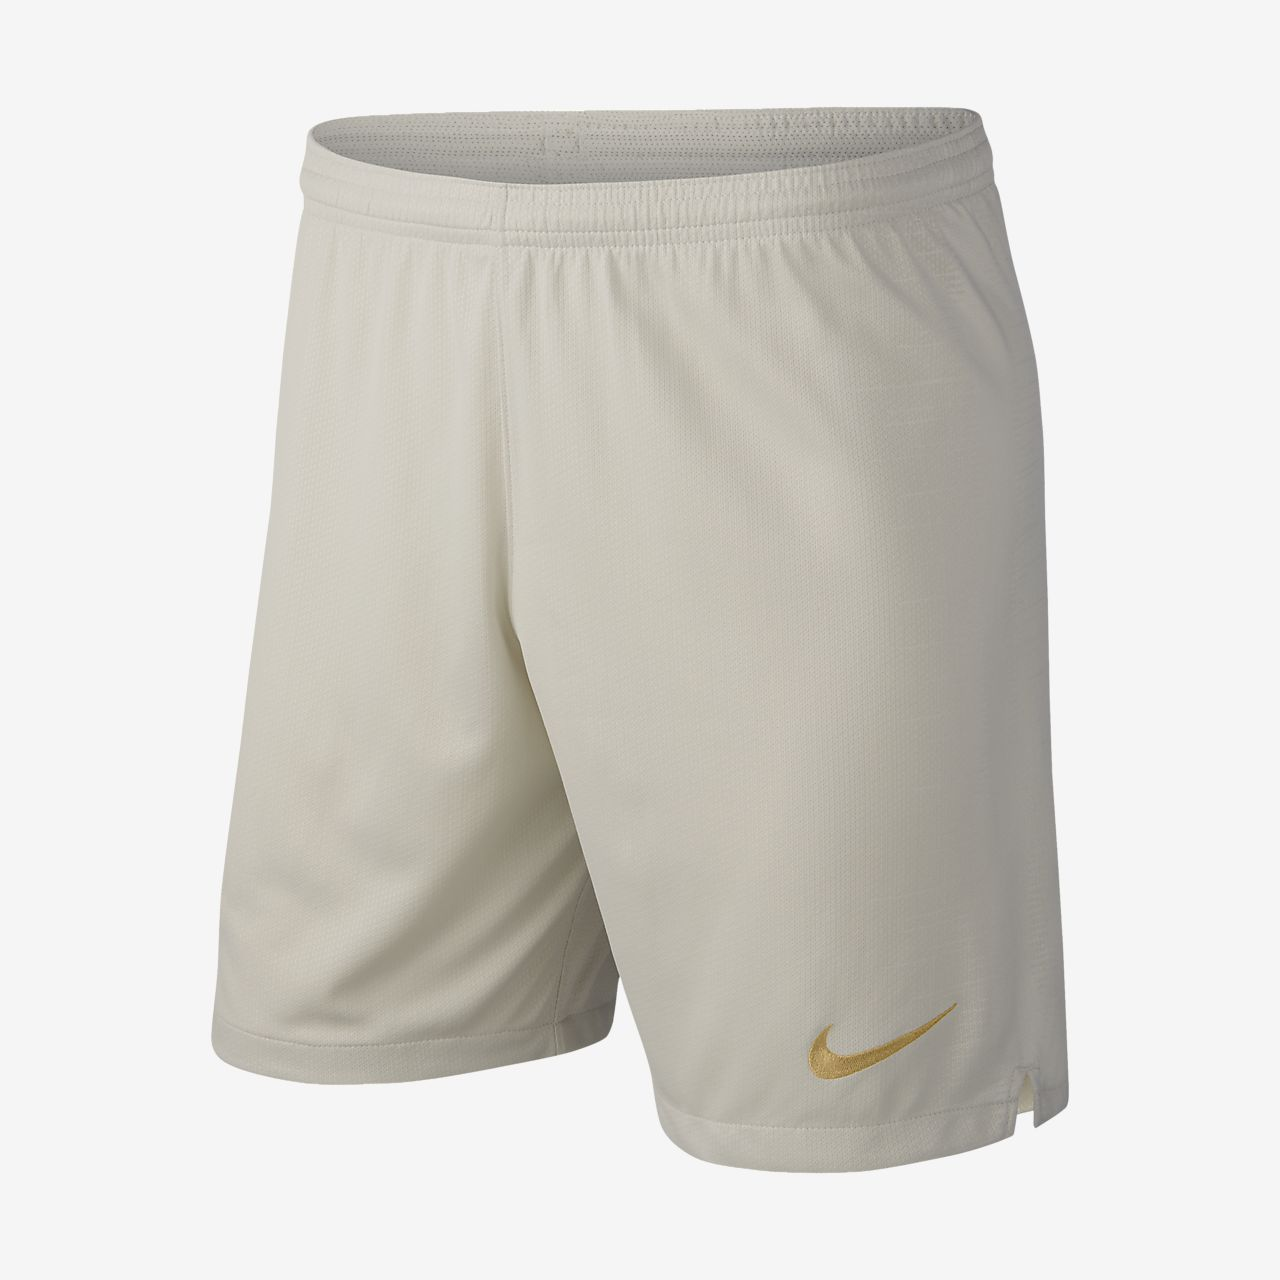 Shorts de fútbol para hombre 2018/19 Paris Saint-Germain Stadium Home